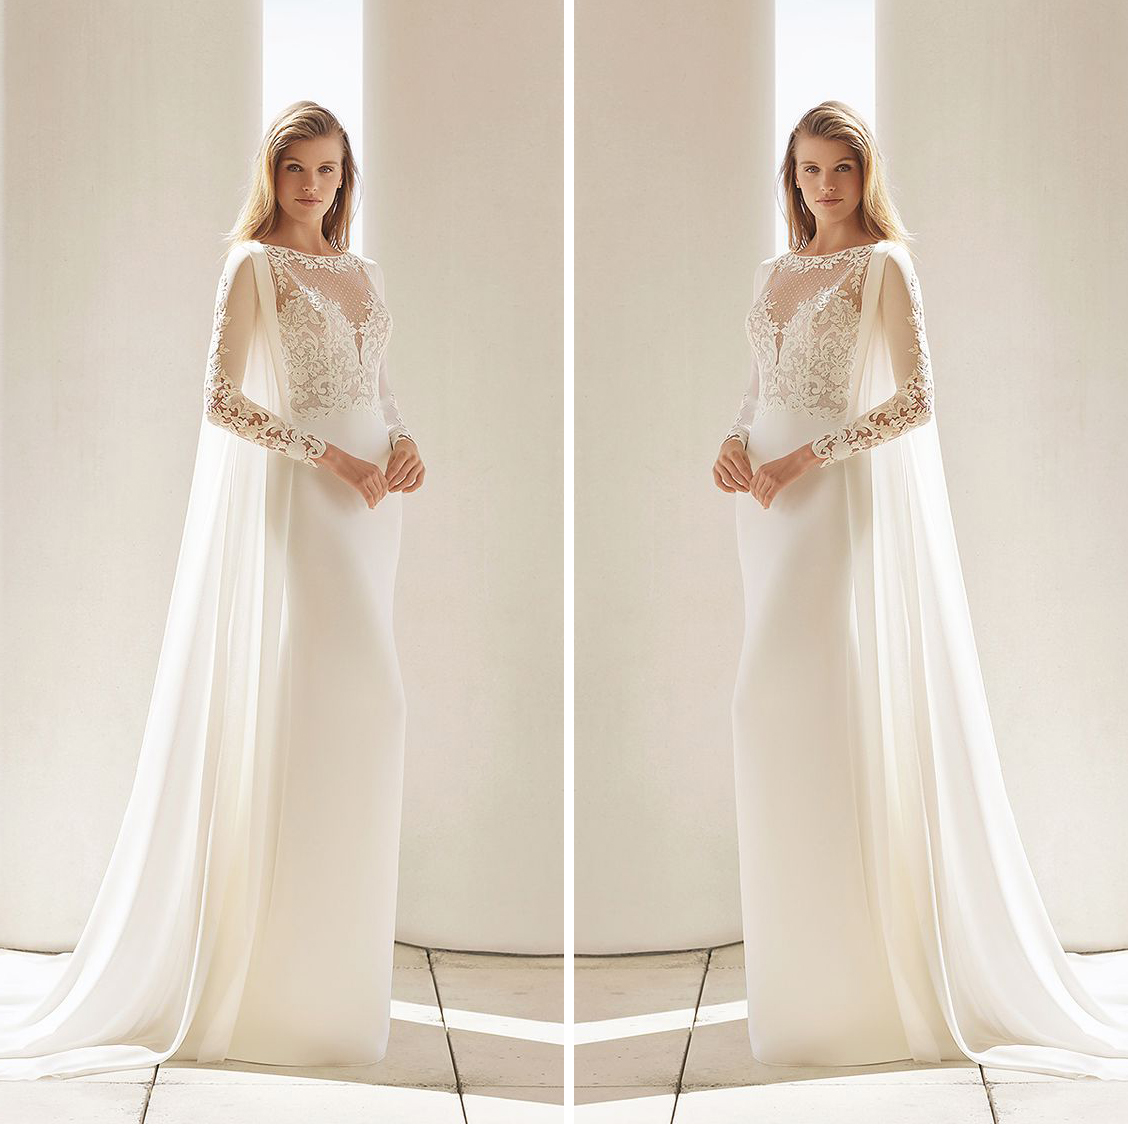 26700d2b31 Ivory Lace Satin Wedding Dress Long Sleeve Appliques Bateau Floor Length  Robe Handmade Summer Bridal Gown